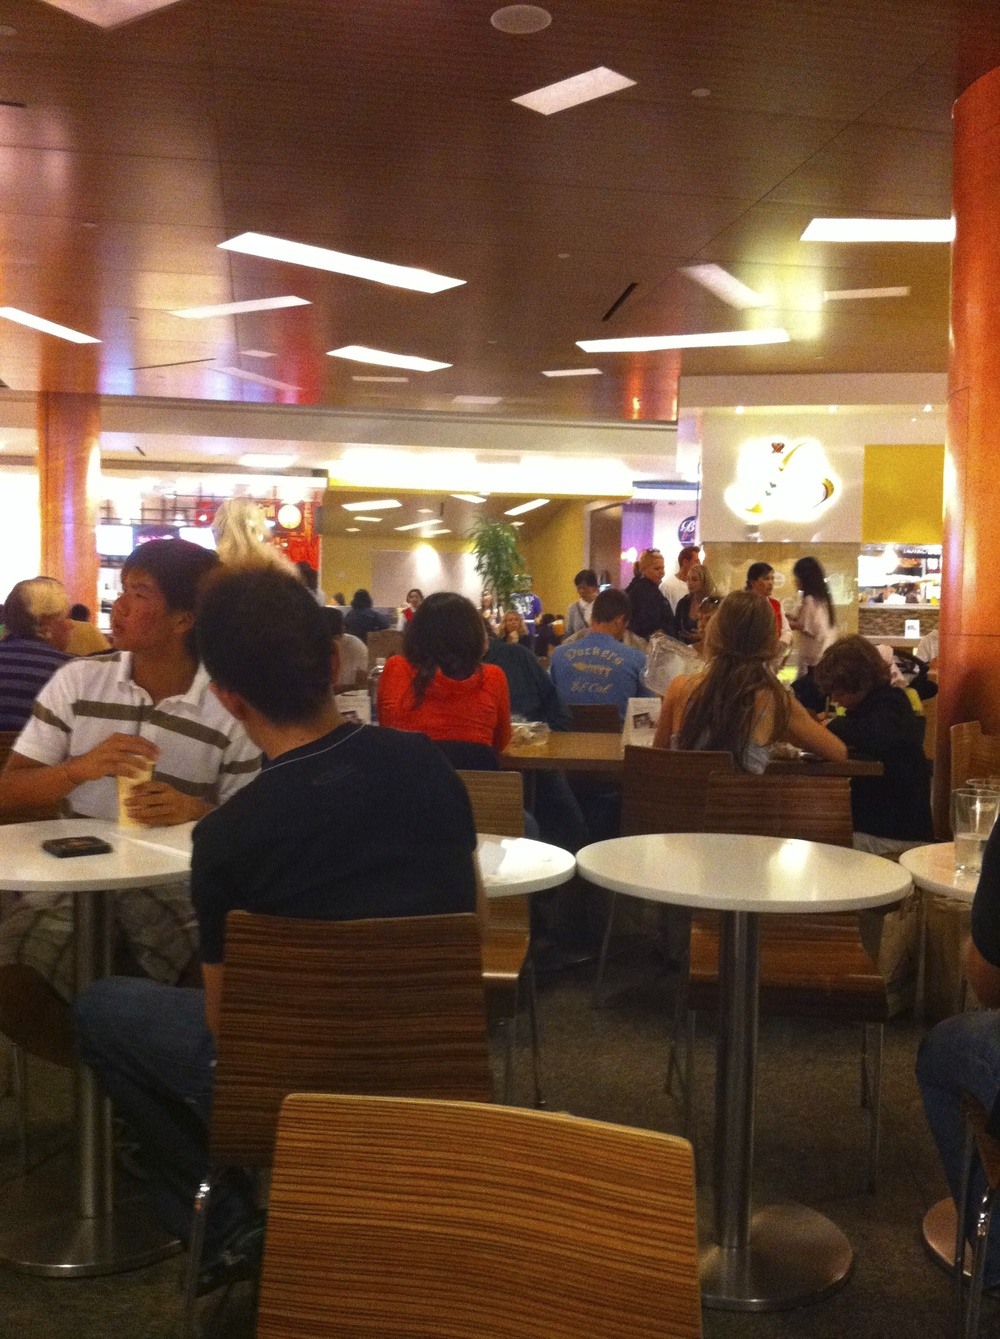 Westfield Food Court, Downtown San Francisco. Photo: Lynne Azpeitia